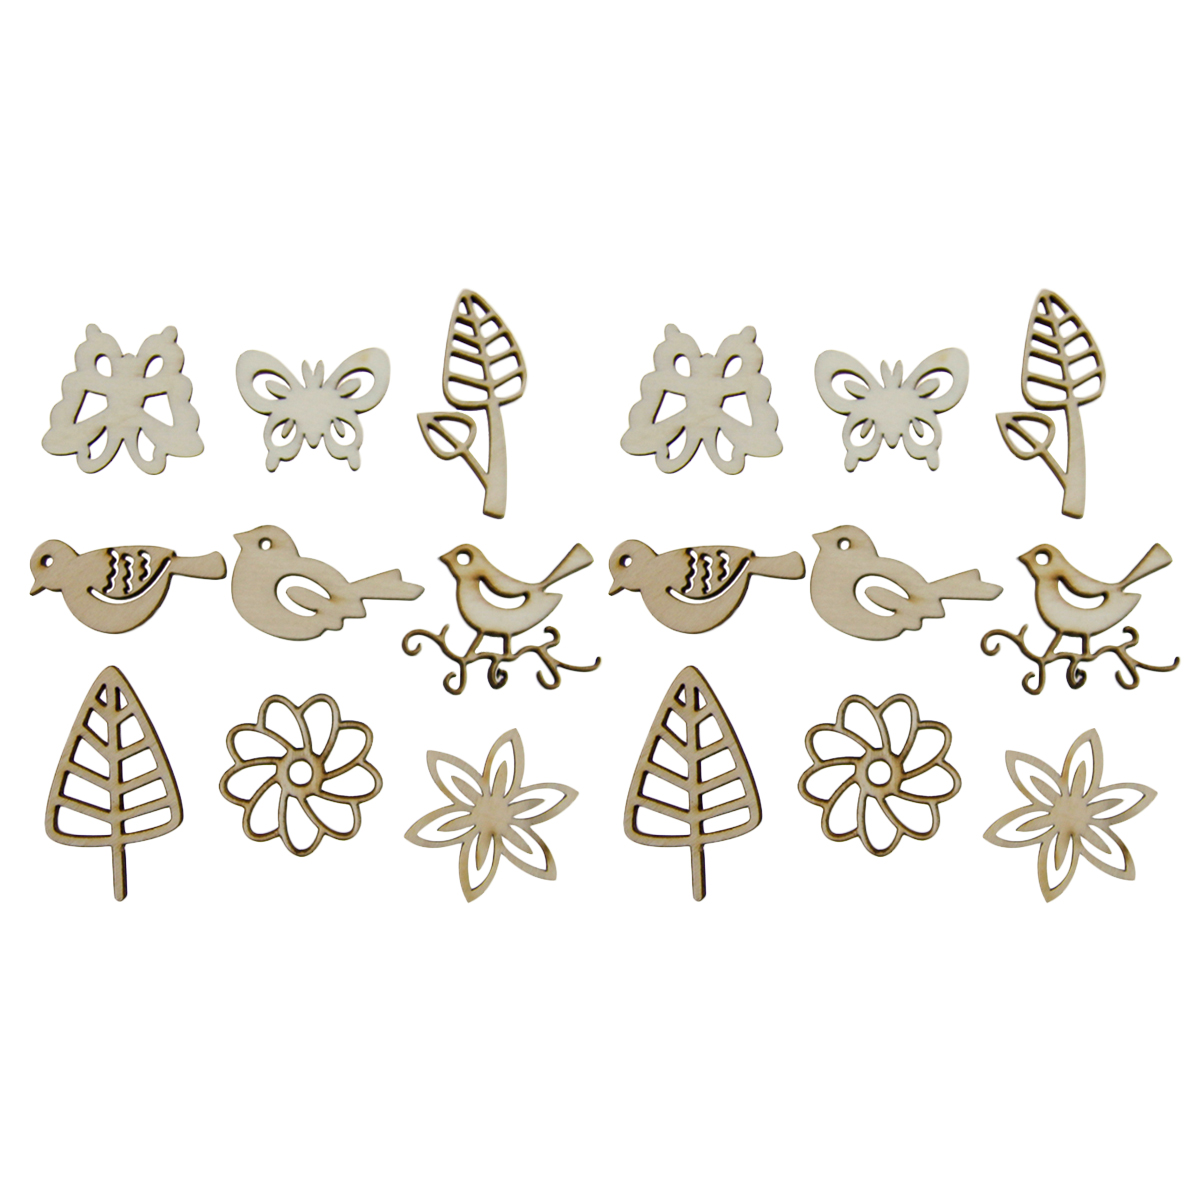 30pcs x Butterfly Self Adhesive Wooden Craft Butterflies Embellishments